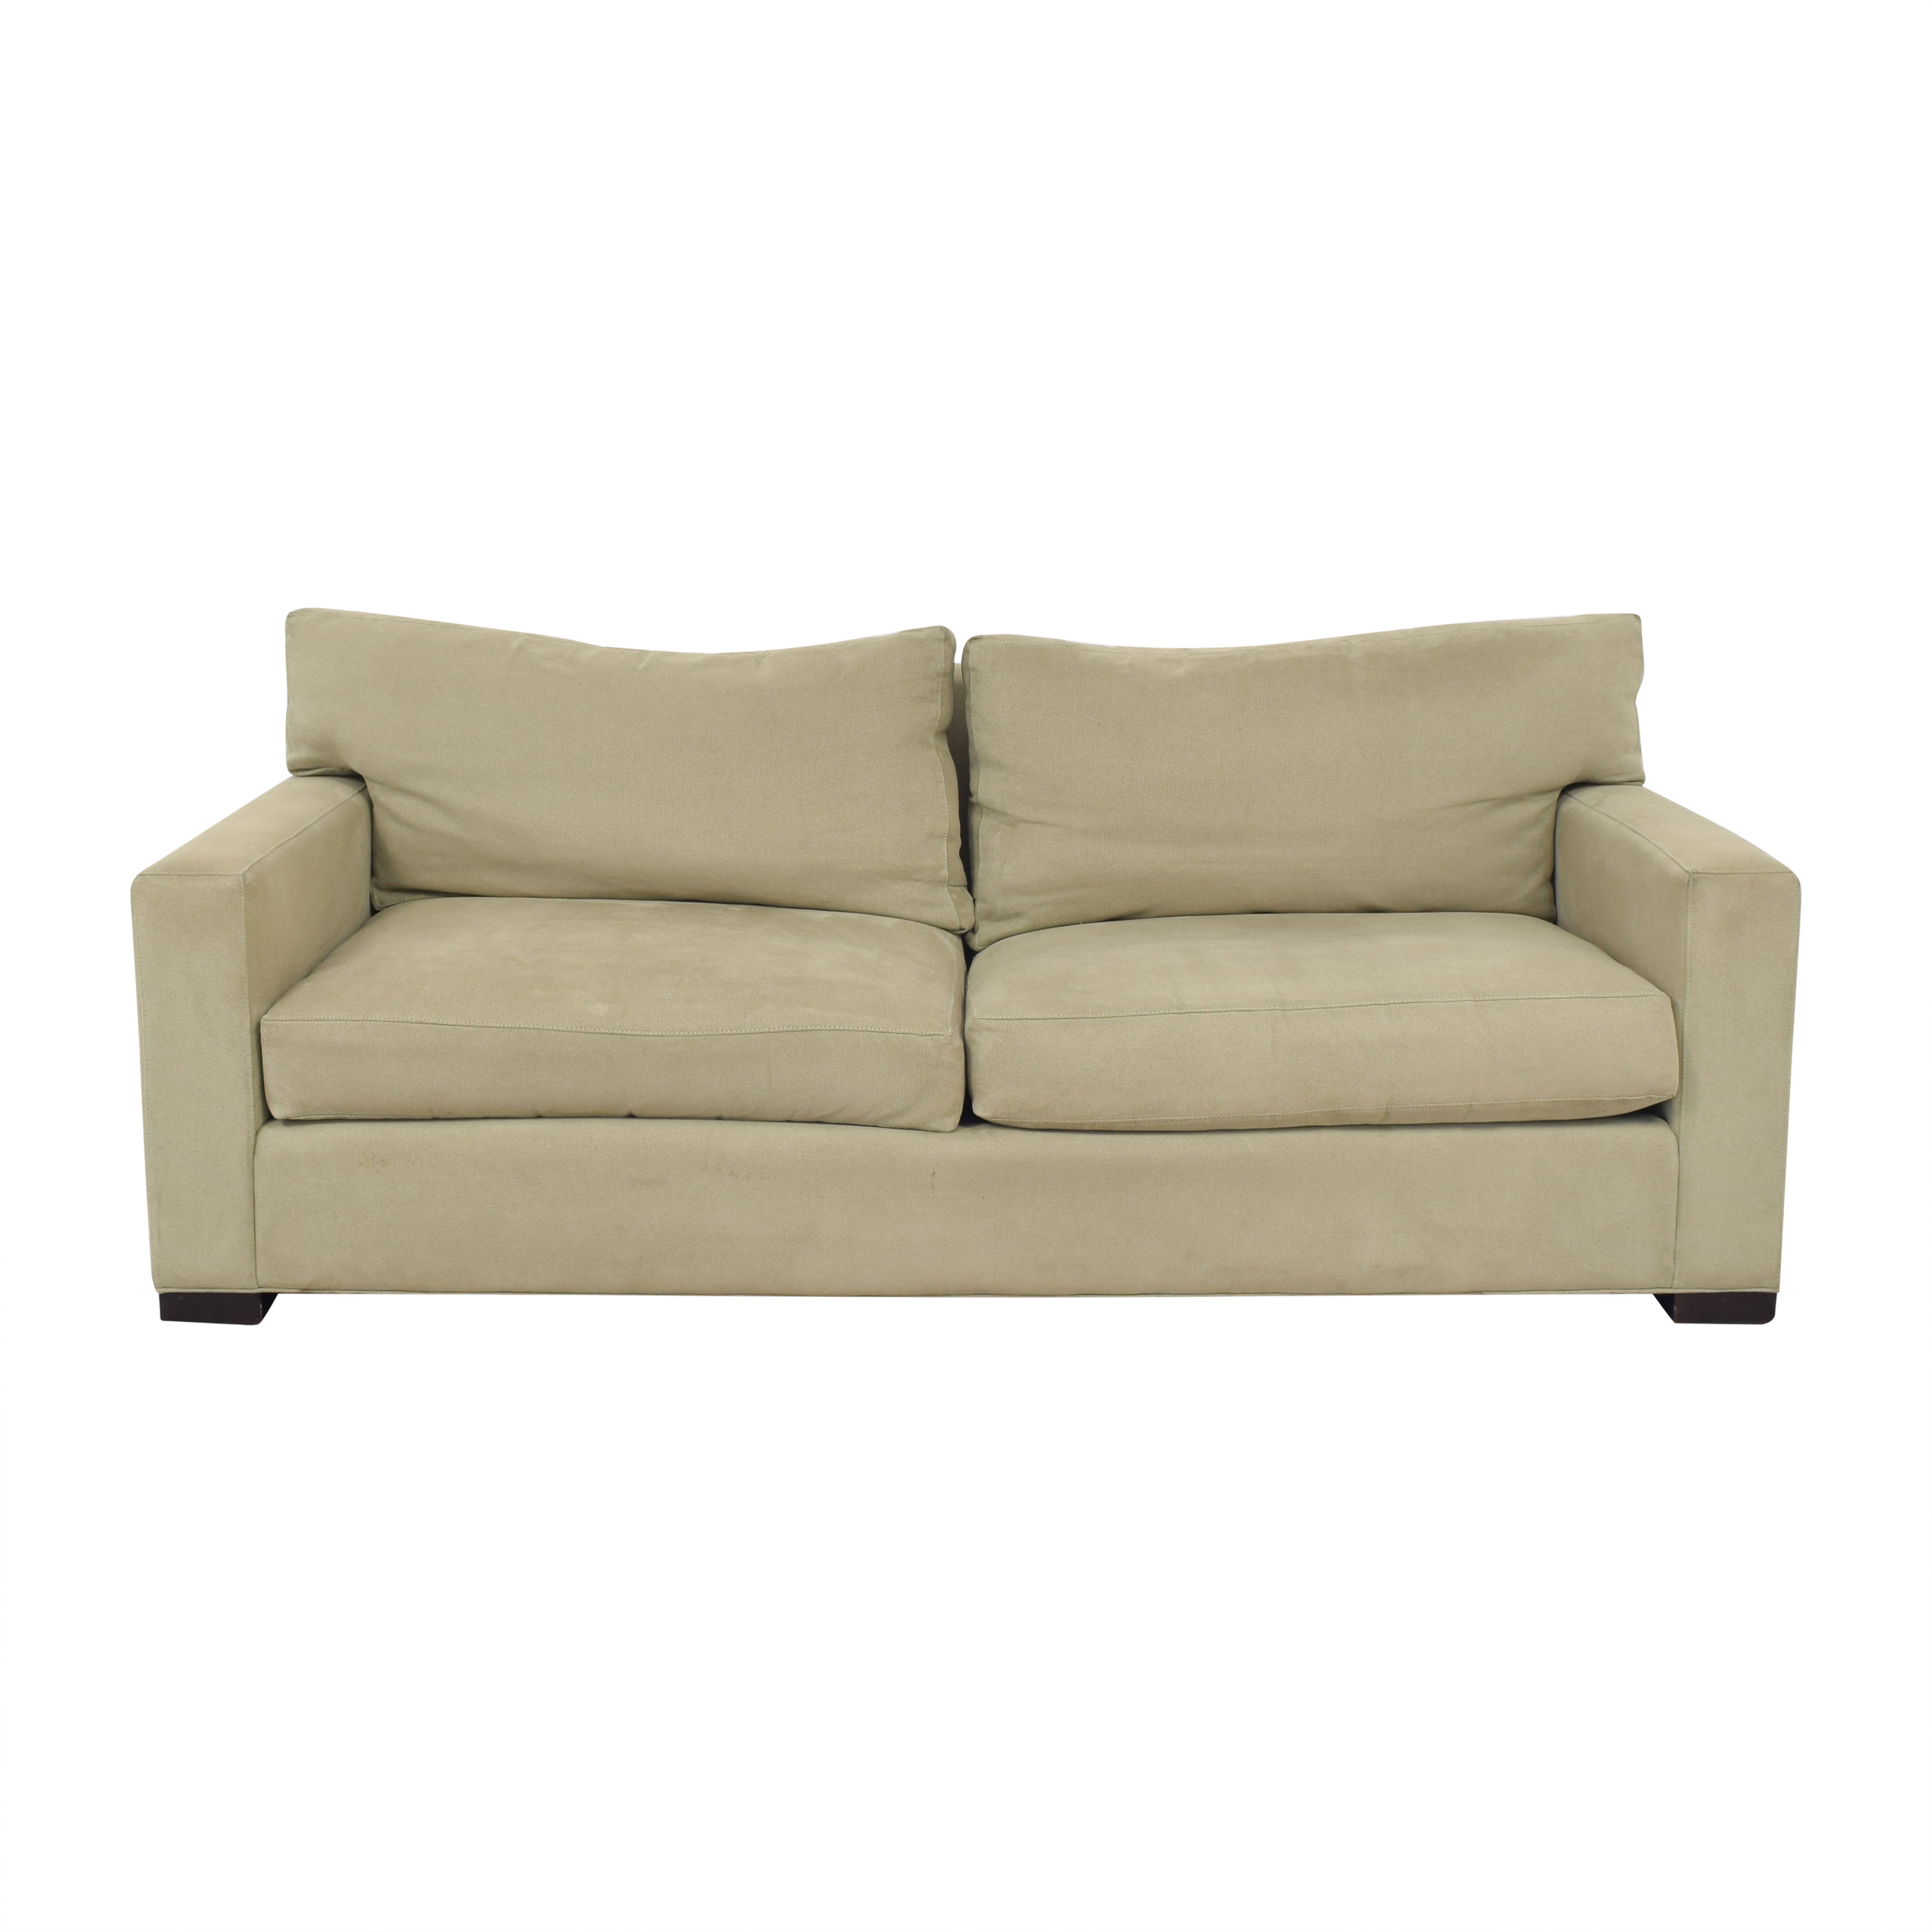 shop Crate & Barrel Axis II 2 Seat Sofa Crate & Barrel Sofas